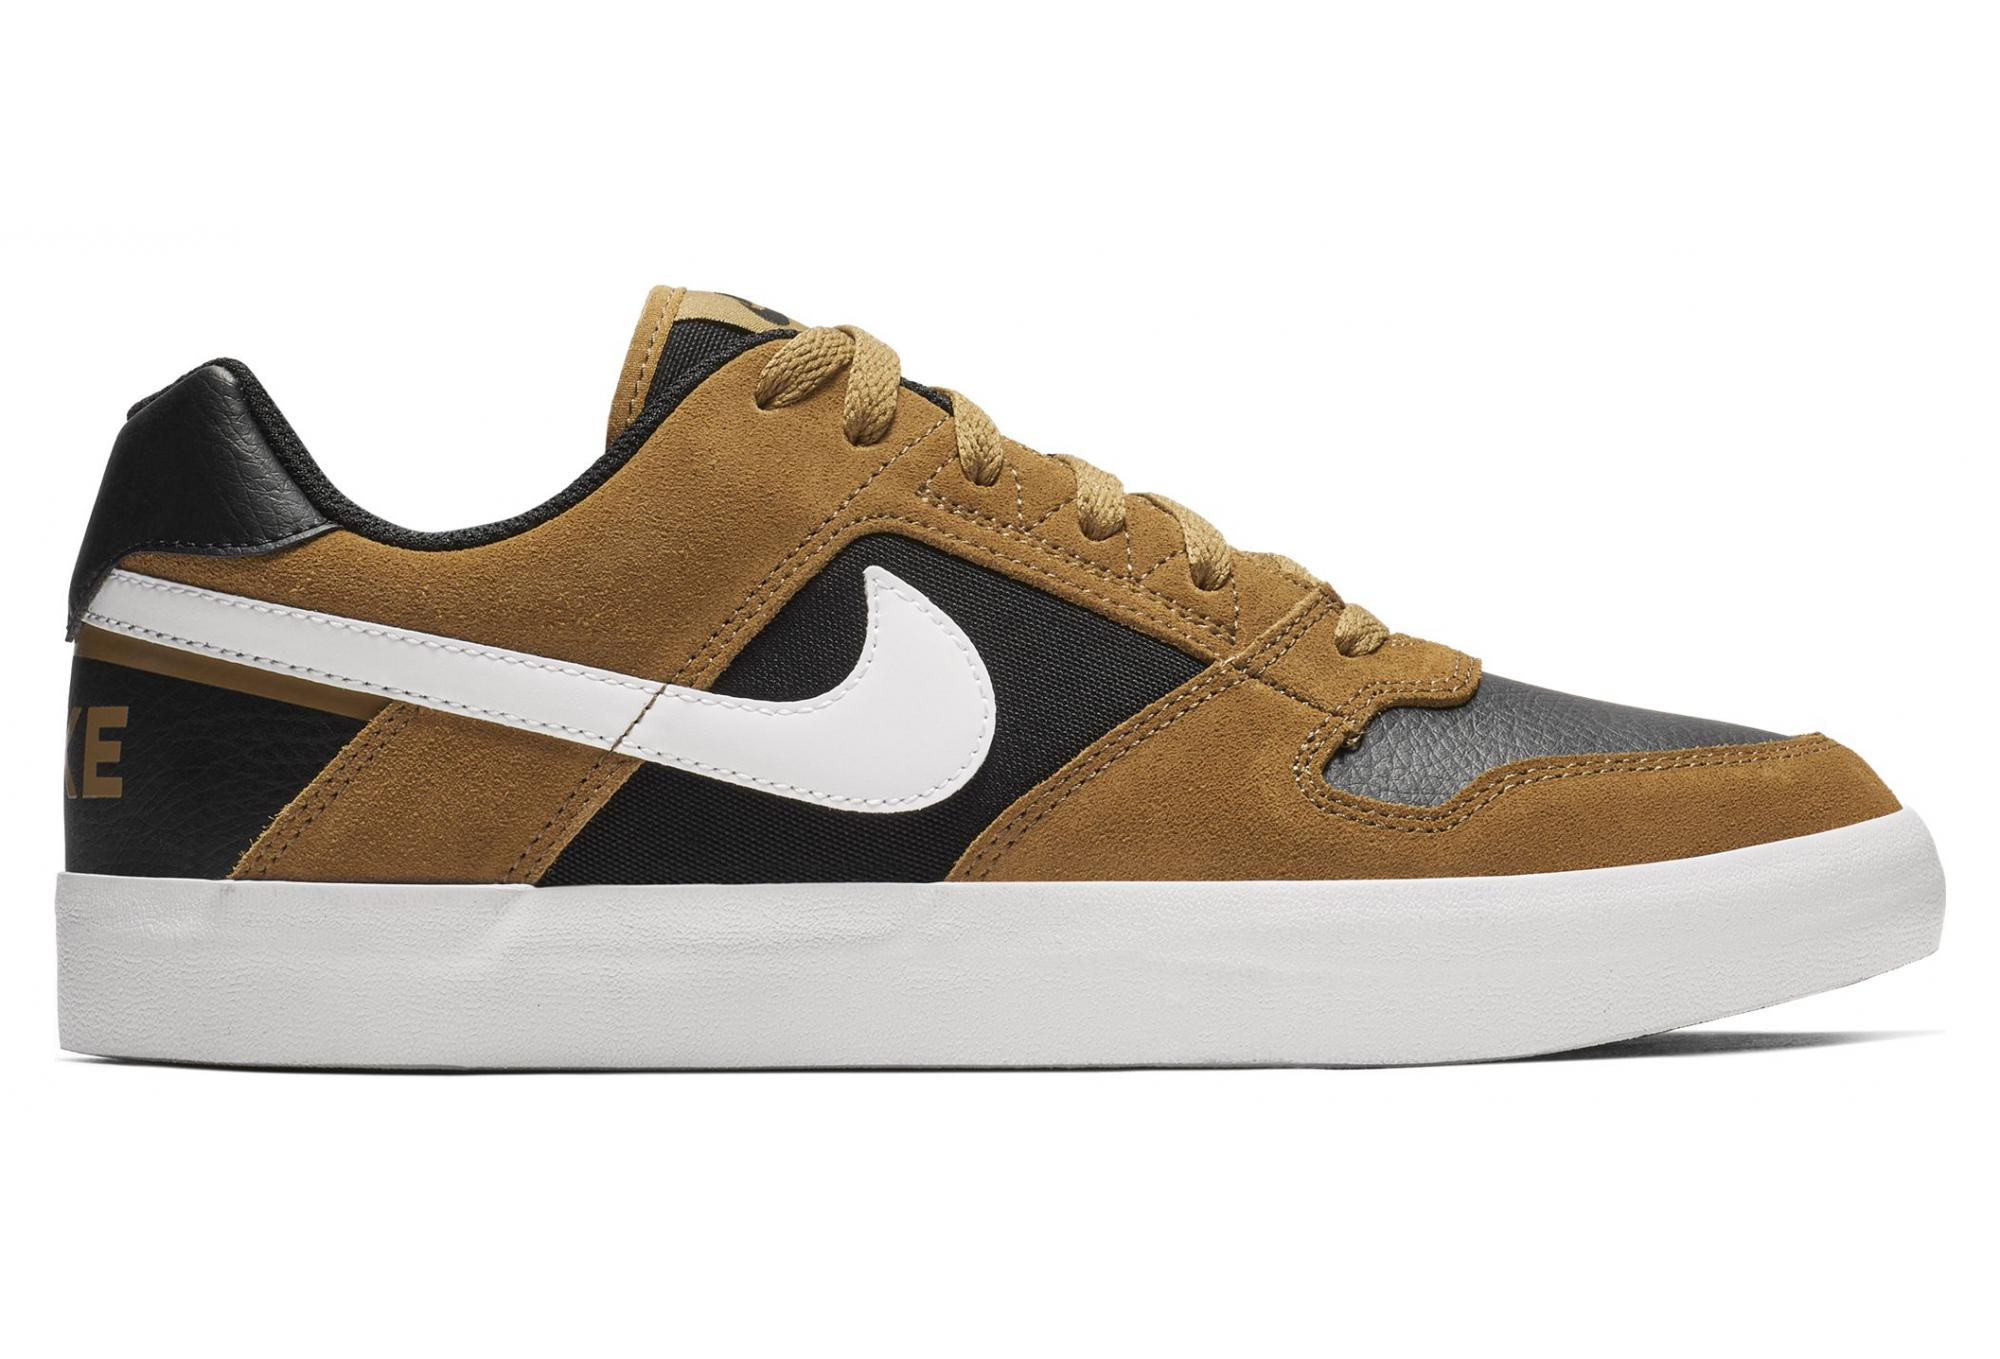 Nike SB Delta Force Vulc Shoe Brown Black | Alltricks.com